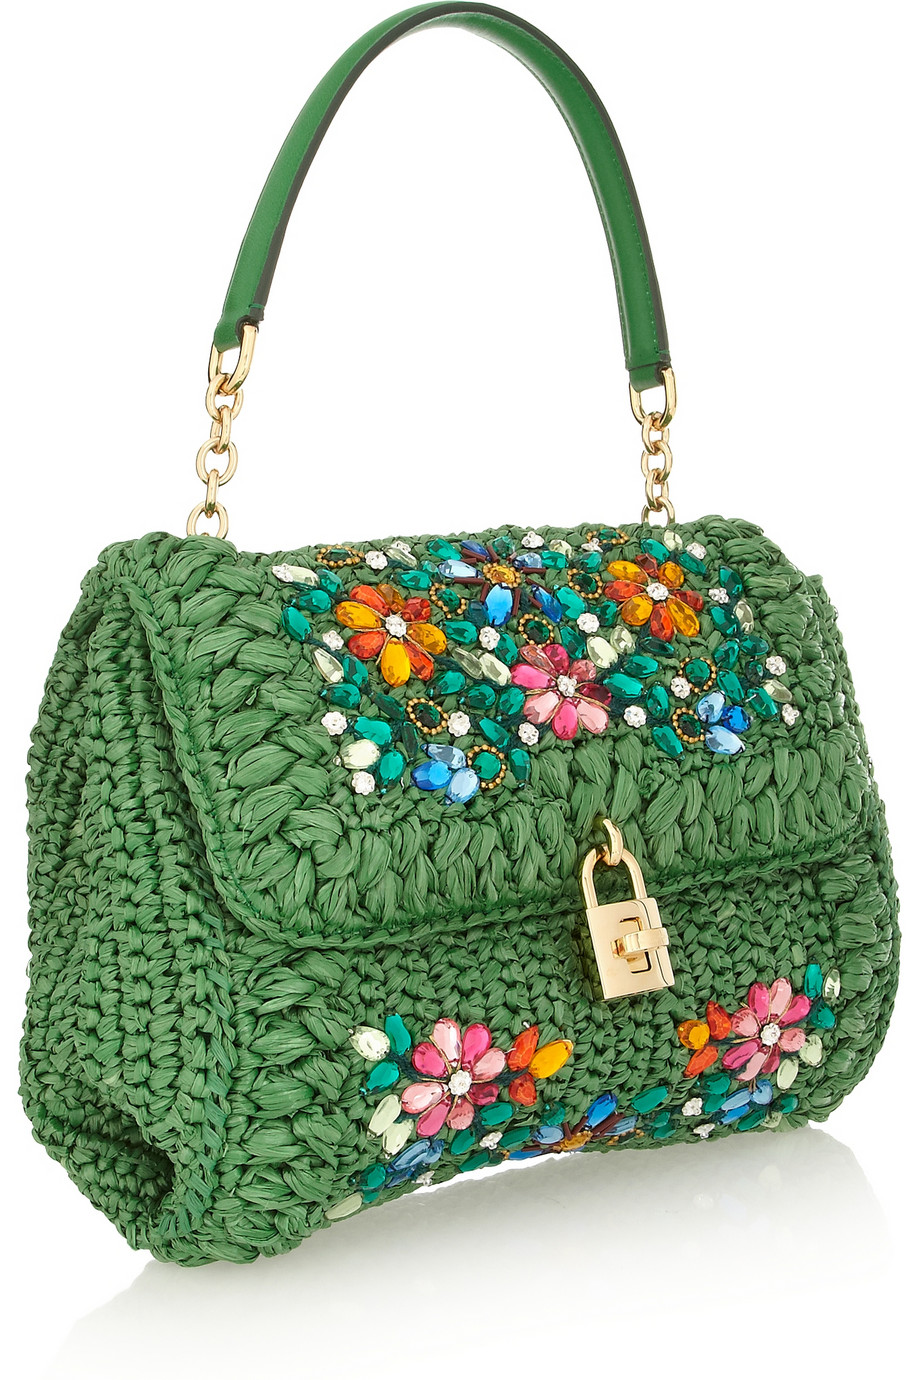 ... Lyst - Dolce Gabbana Miss Dolce Medium Embellished Raffia and Leather  Shoulder Bag in Green more ... e1fb251849a4a